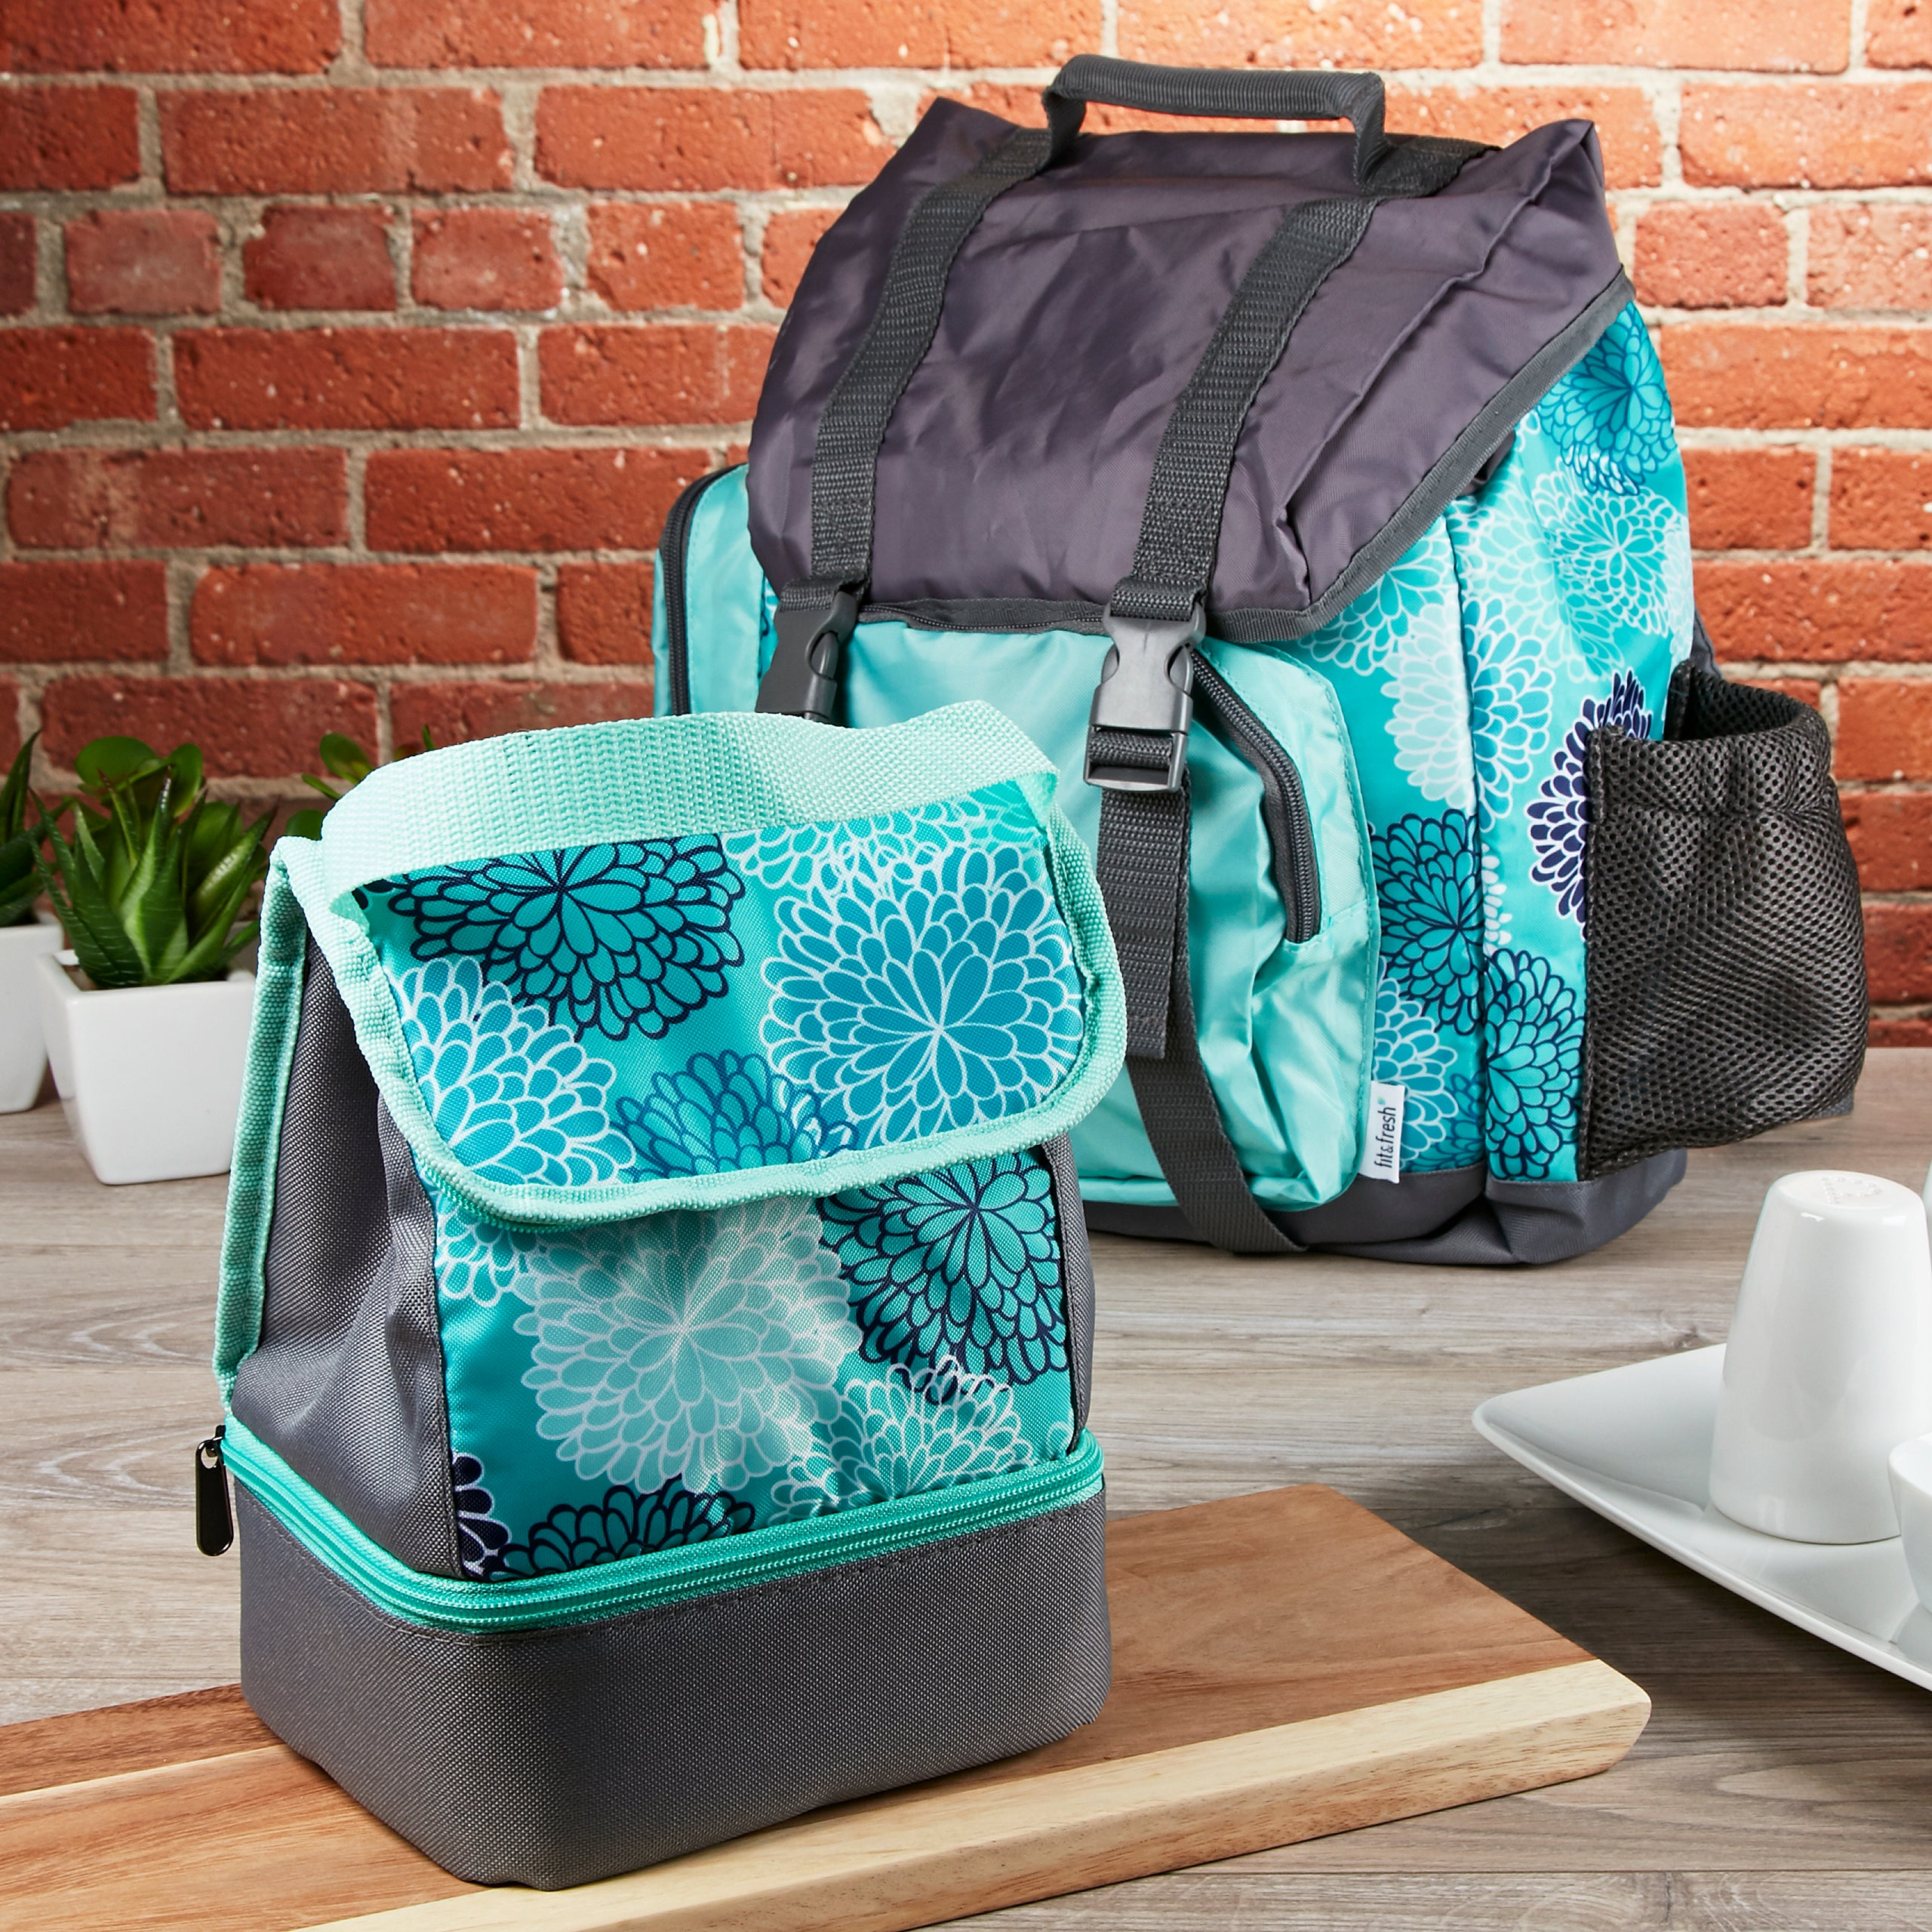 Kids' Adventure Rucksack BackPack & Matching Insulated Lunch Bag